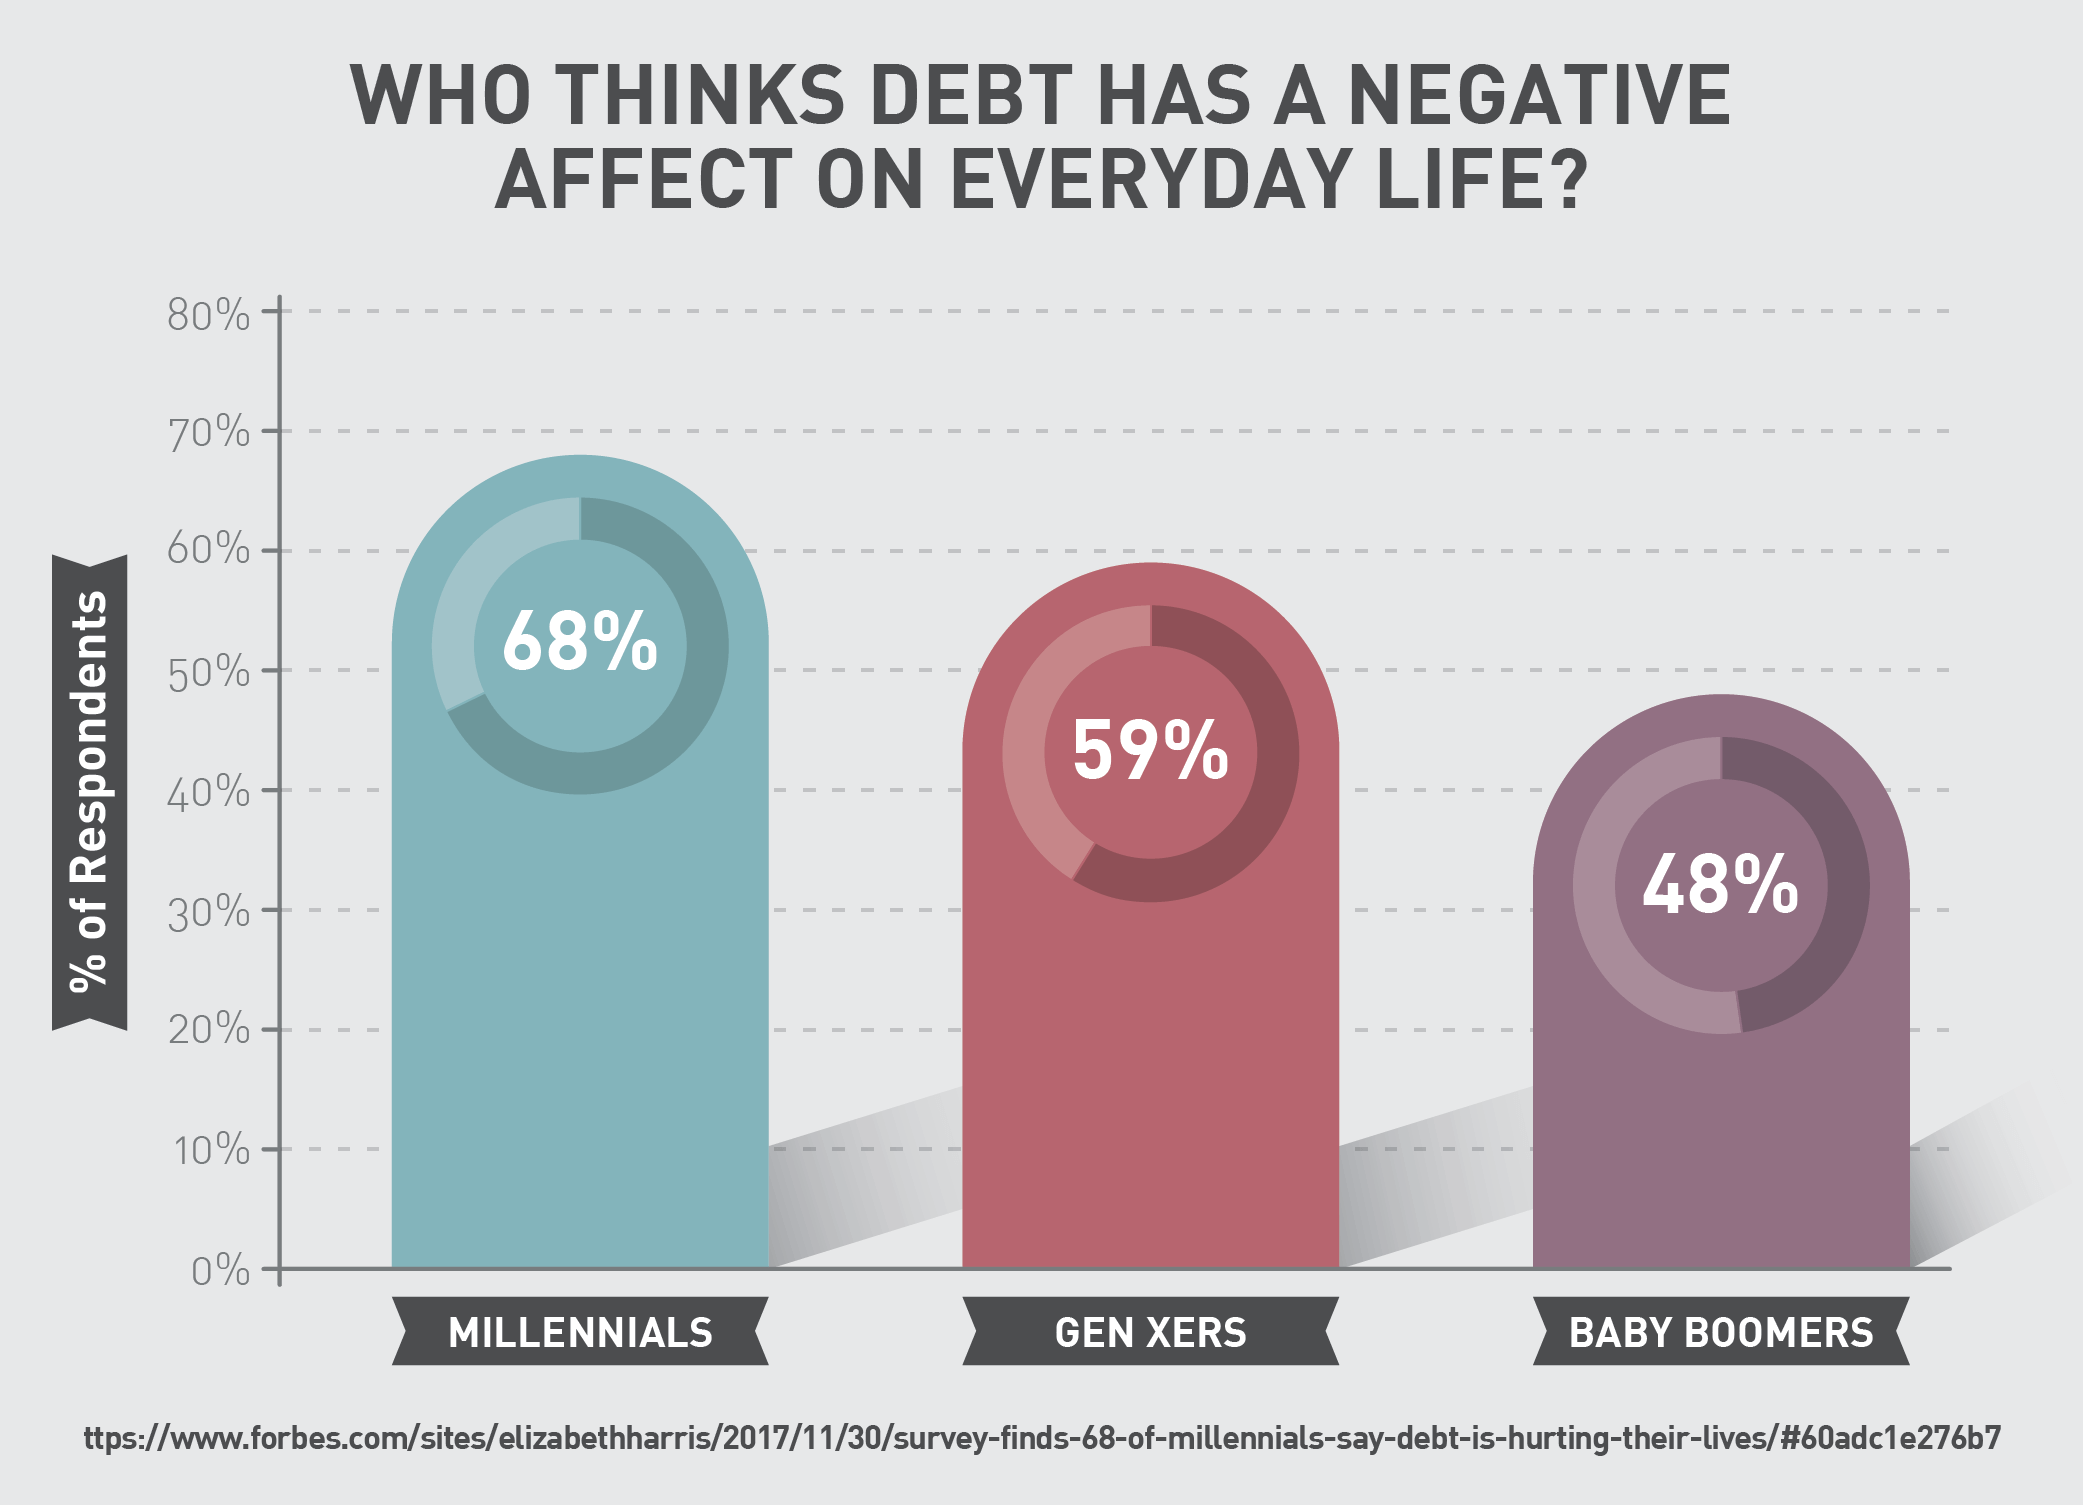 Who thinks debt has a negative affect on everyday life?